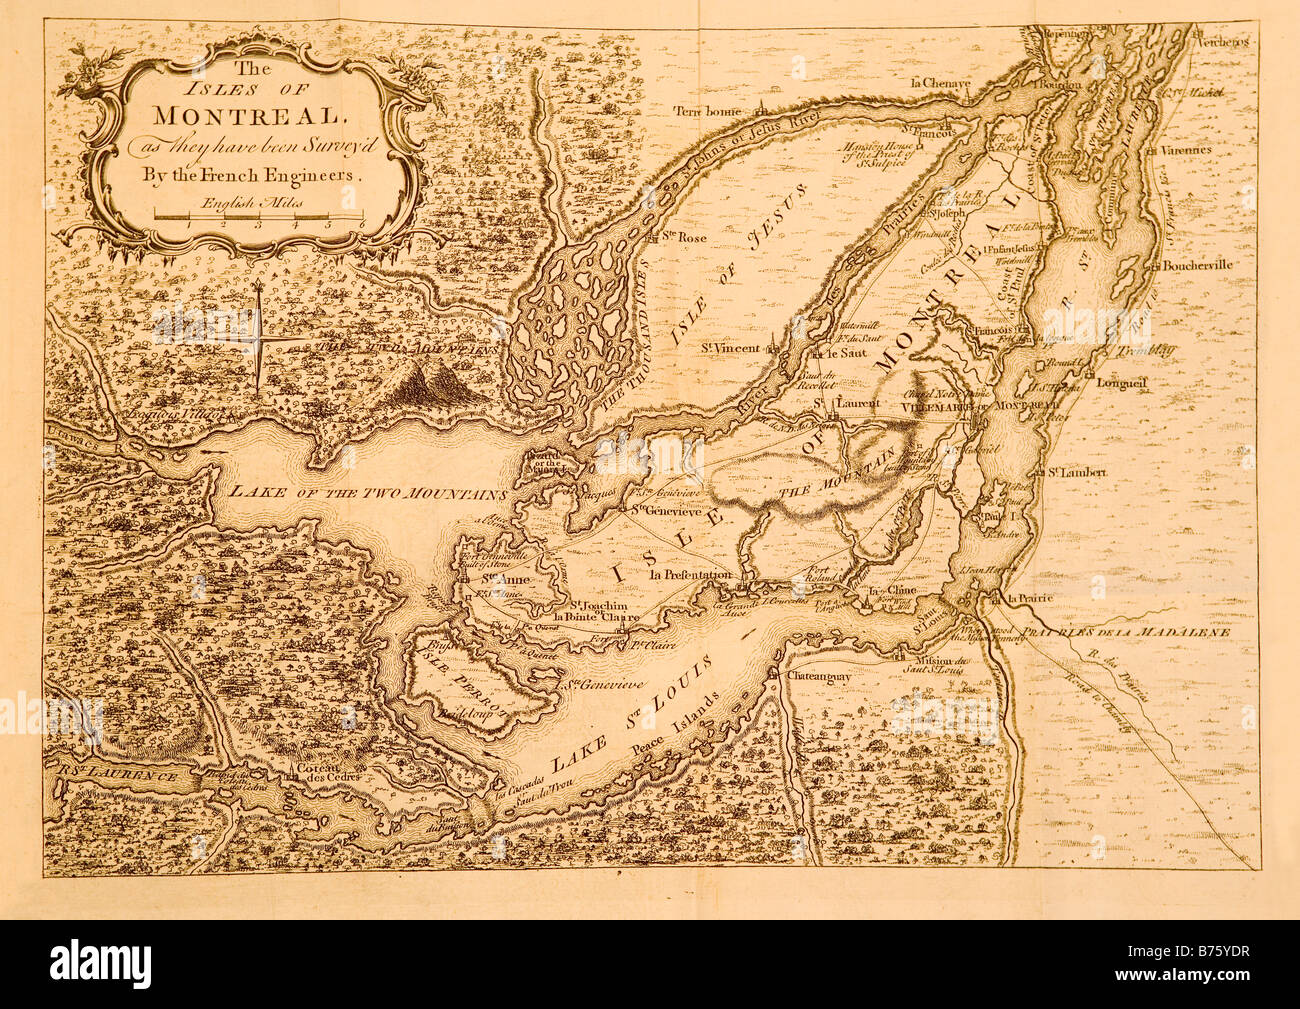 Map Of London England And Surrounding Area.A Map Printed In London England Circa 1761 Showing Montreal And The